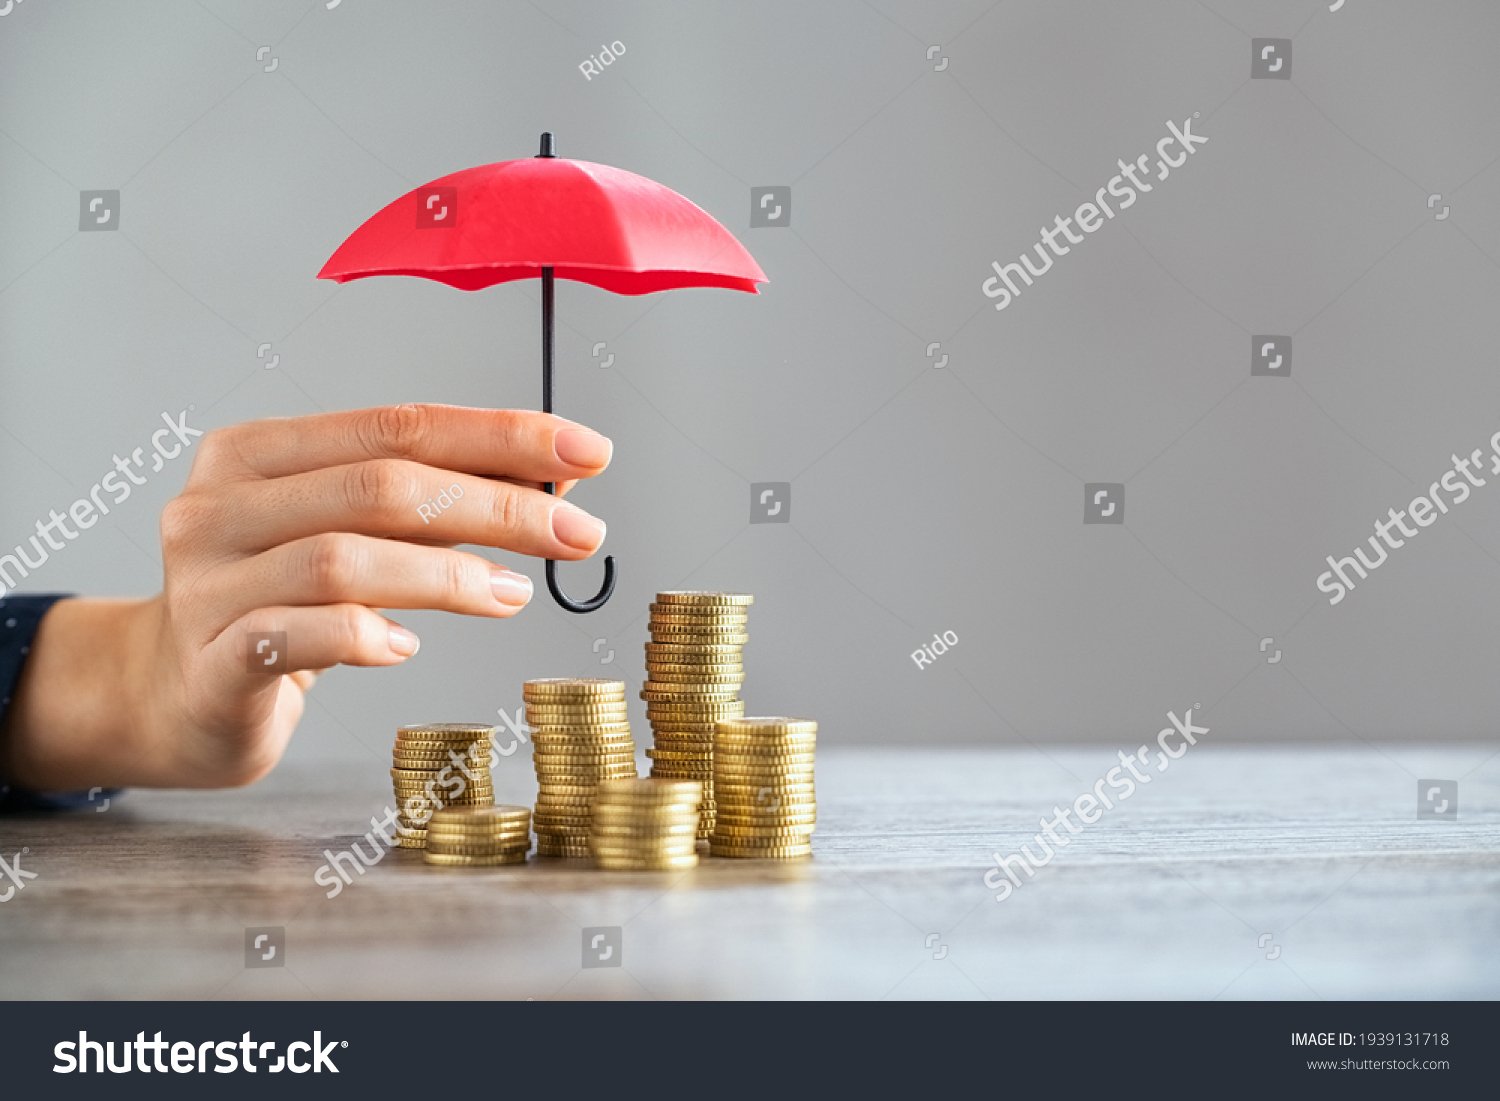 Young woman hand holding small red umbrella over pile of coins on table. Close up of stack of coins with female hands holding umbrella for protection. Financial safety and investment concept.   #1939131718